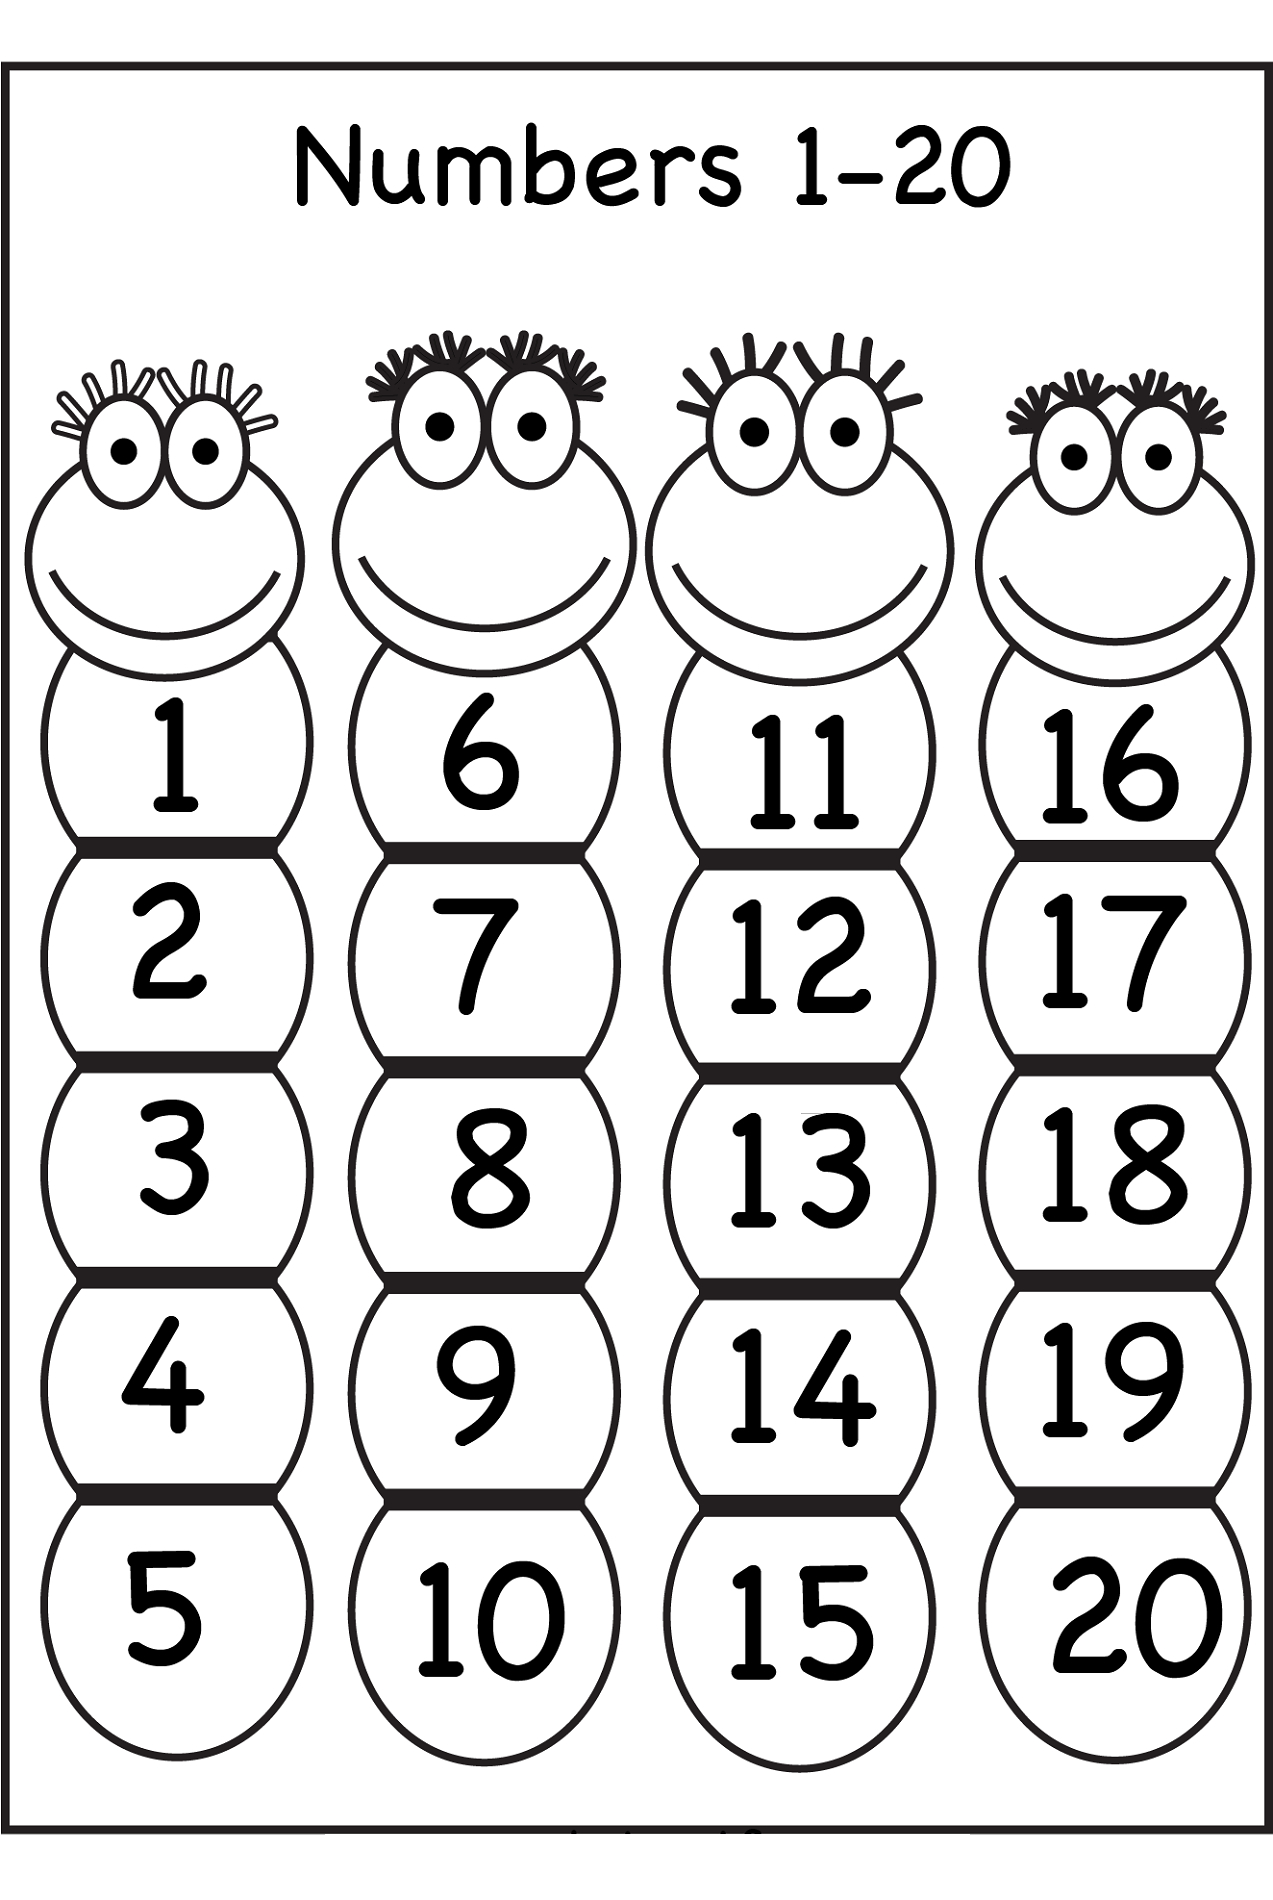 Trace Number 1-20 Worksheets   Activity Shelter   Free Printable Tracing Numbers 1 20 Worksheets